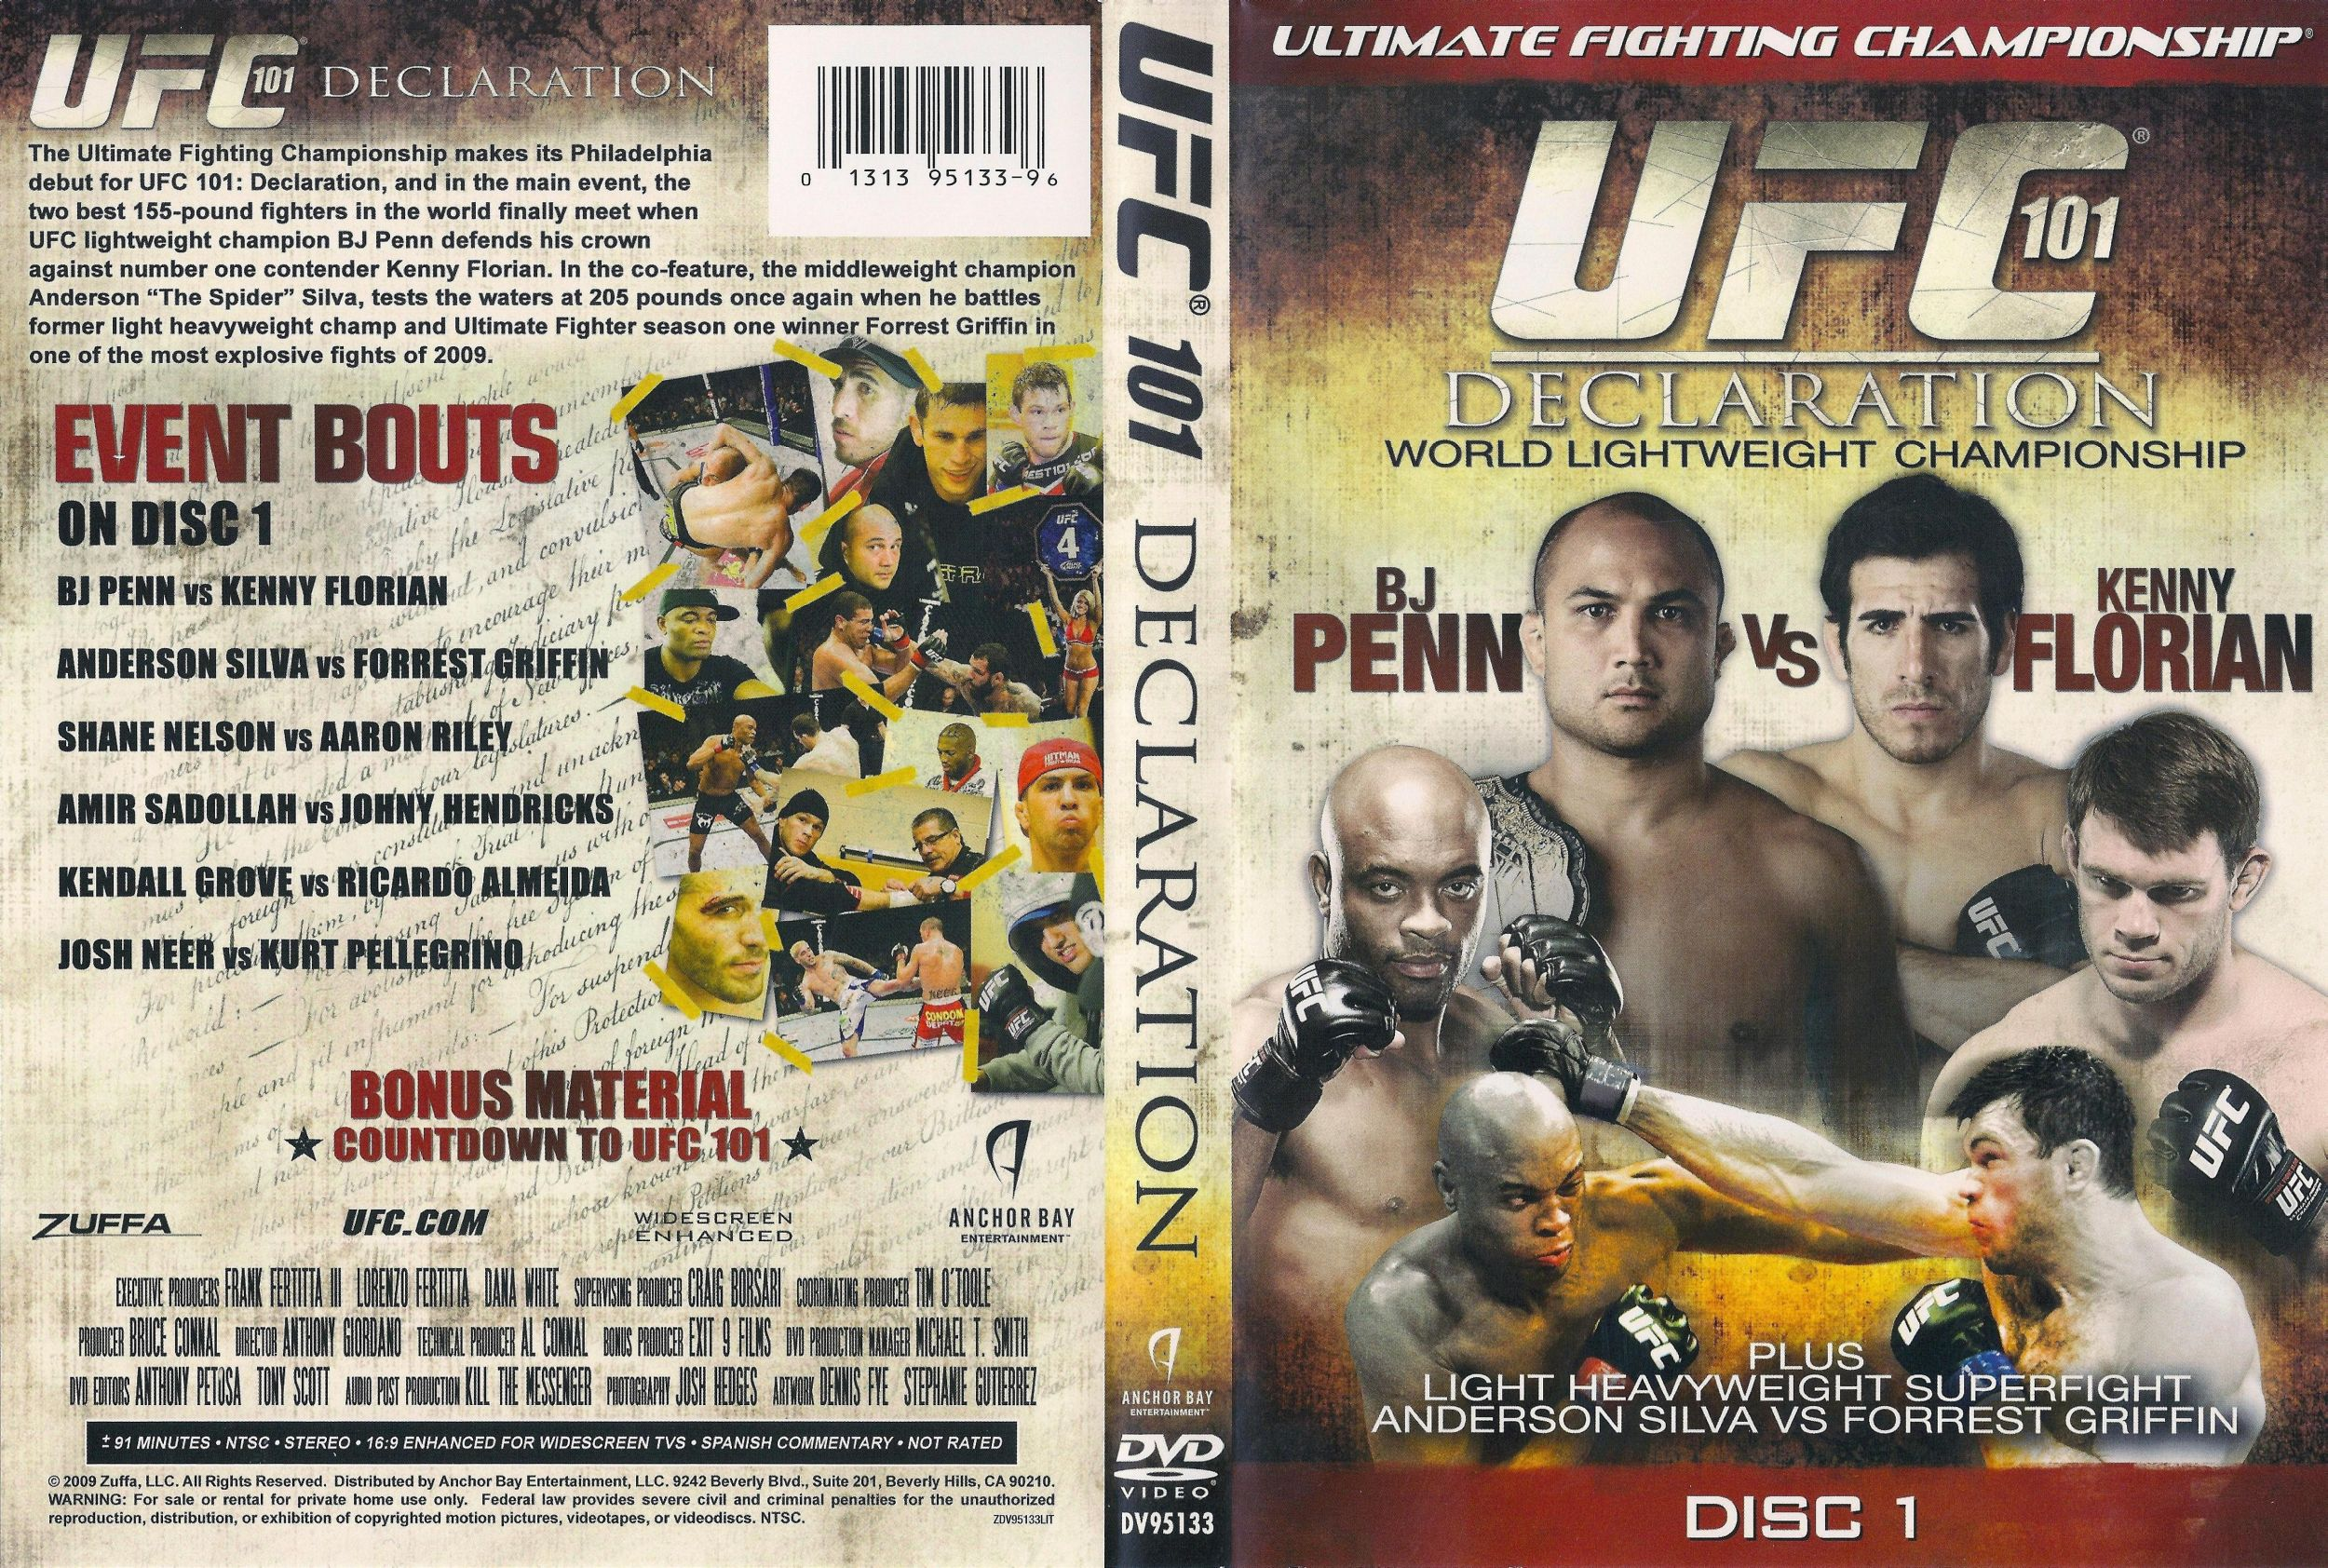 Ufc_101_Declaration_Disc_1_R1-[cdcovers_cc]-front